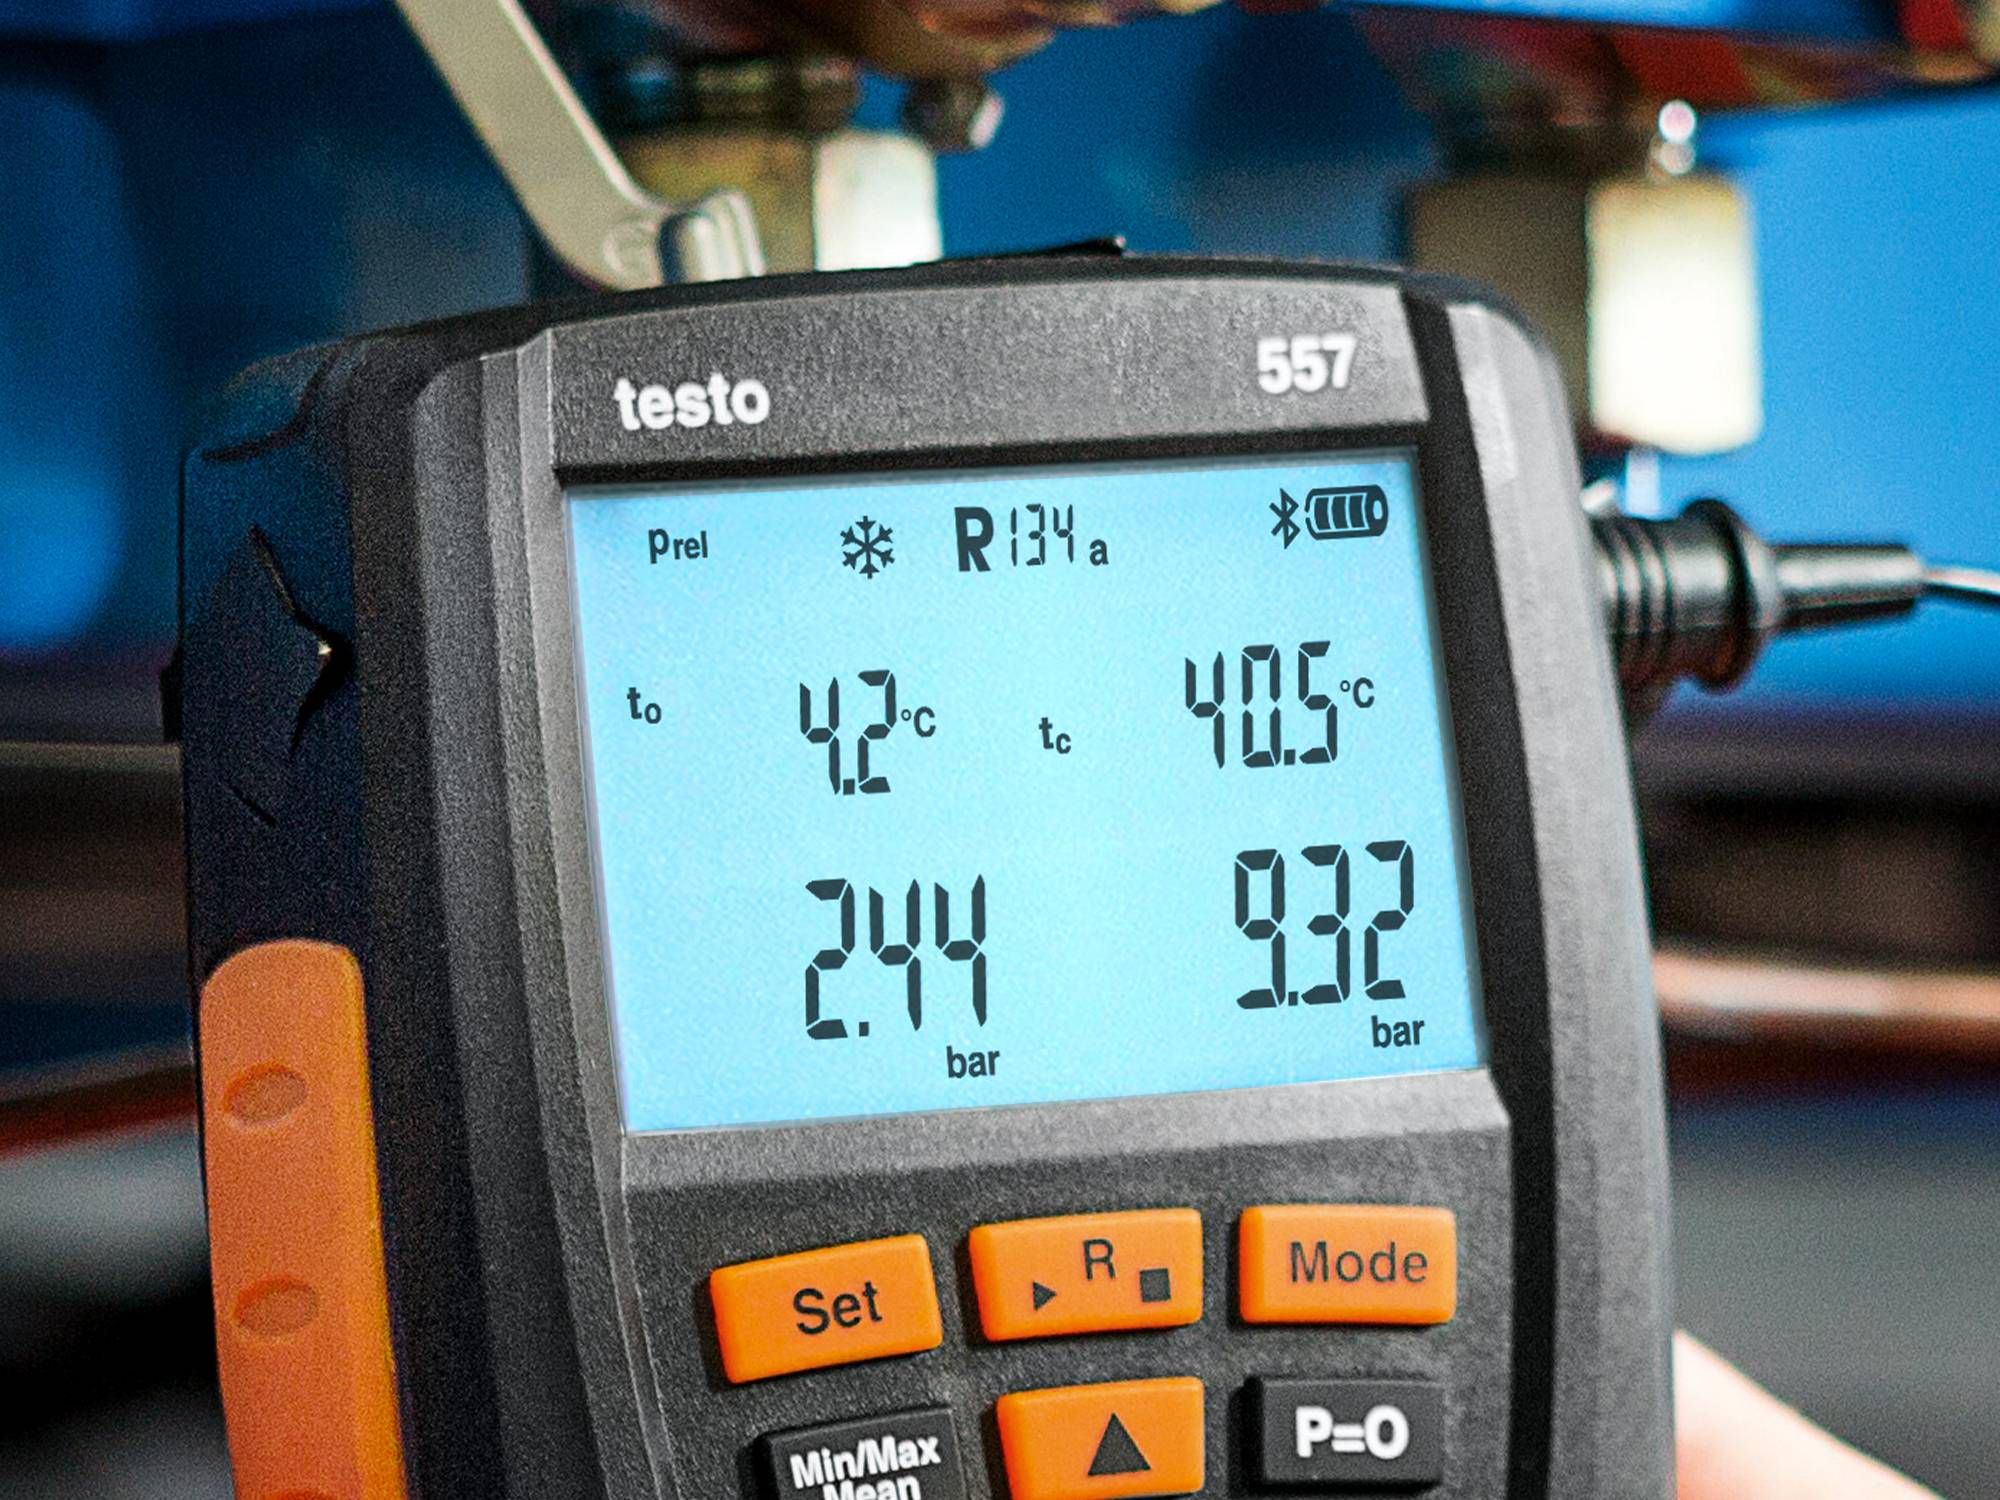 Testo manifold display